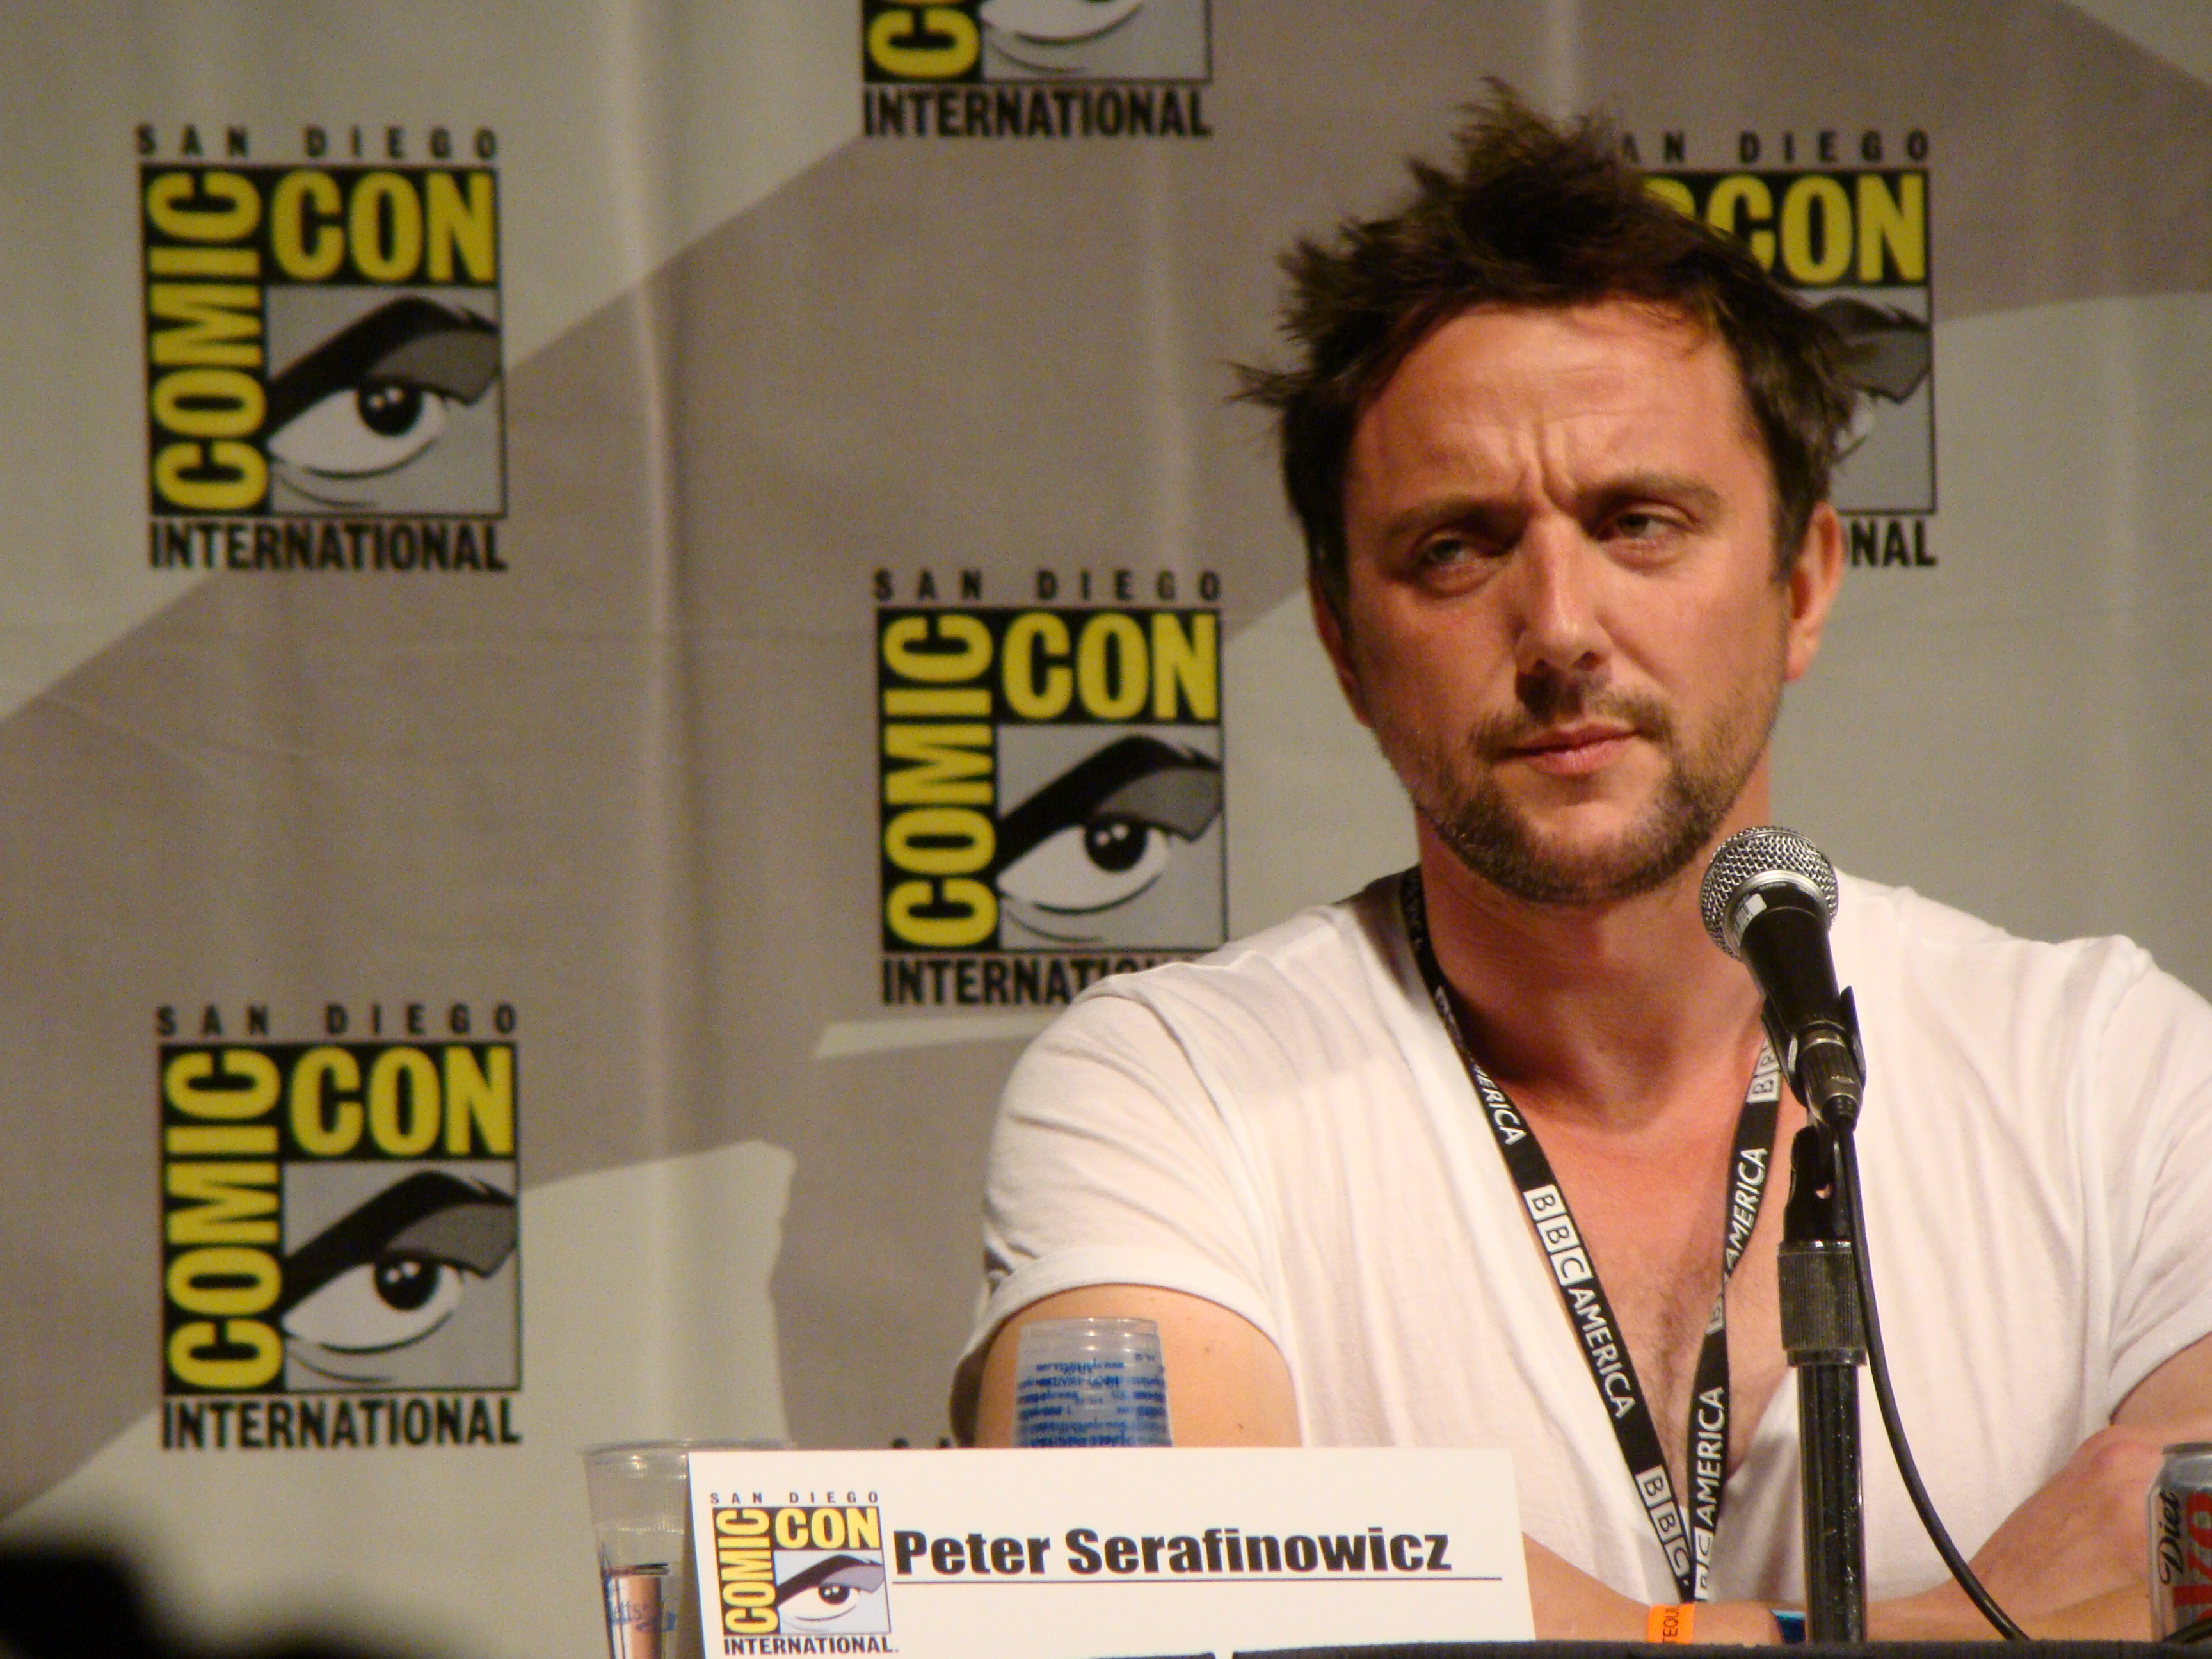 Photo credit: Creative Commons  Peter Serafinowicz